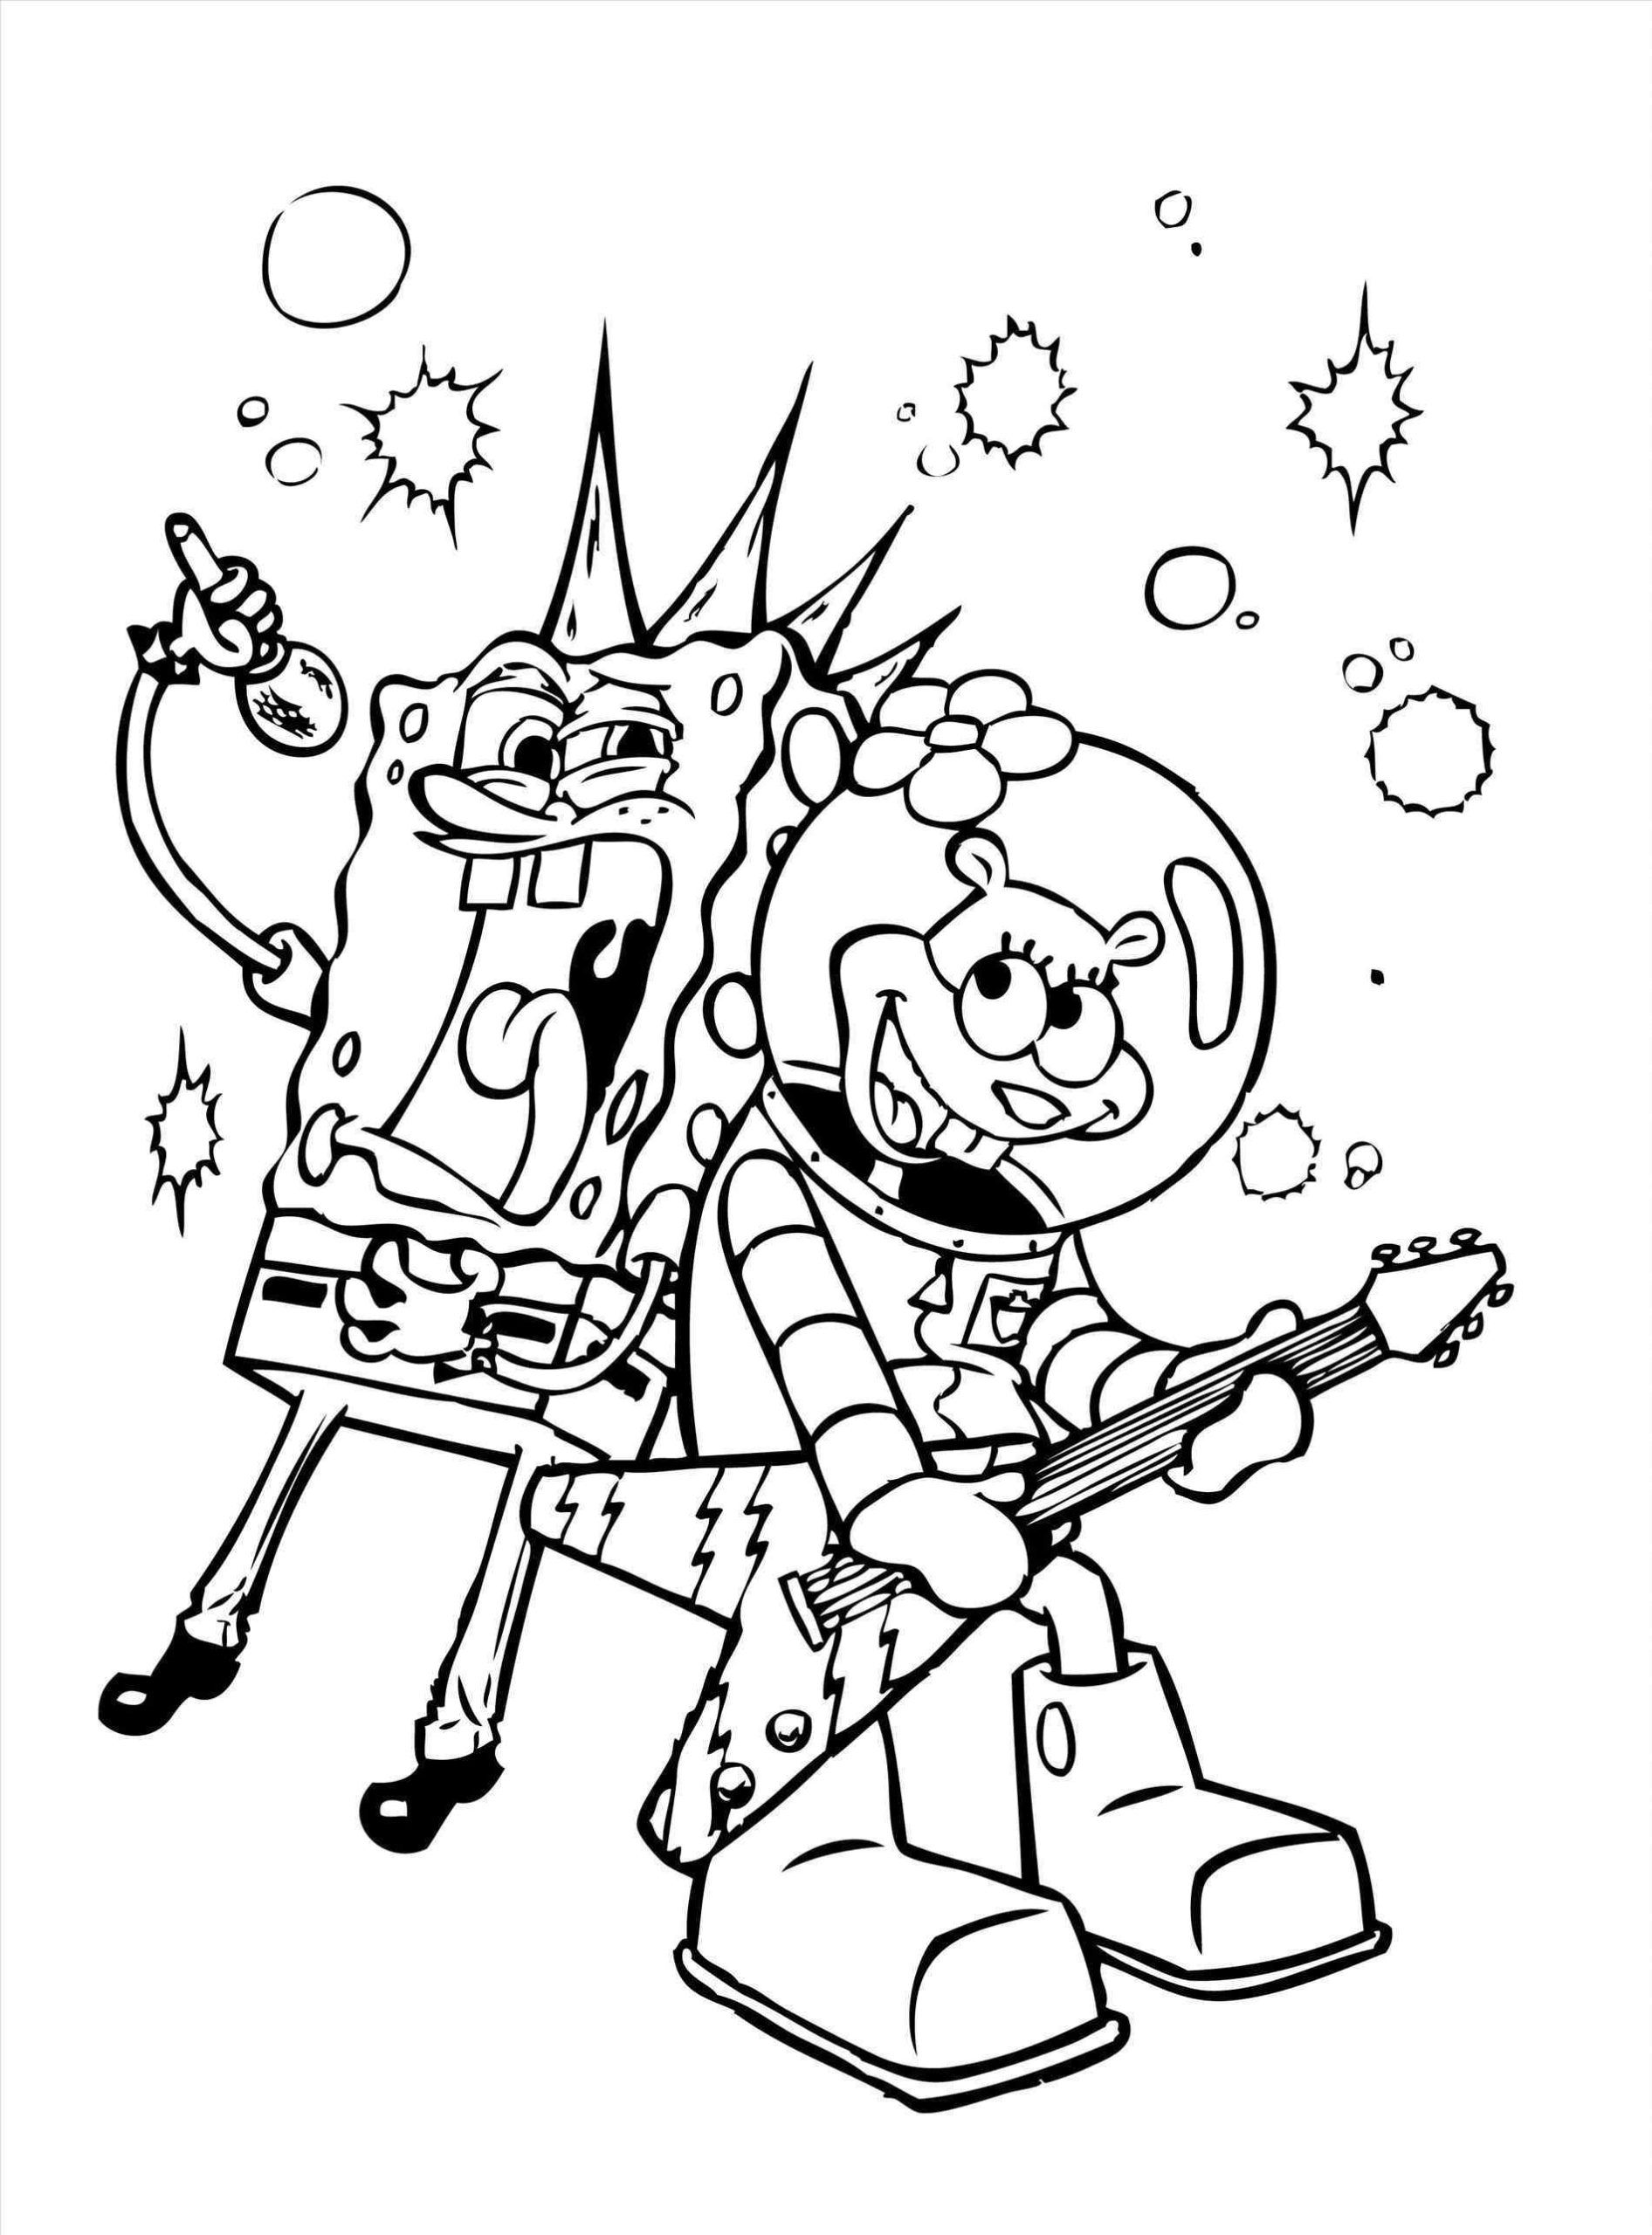 Printable Spongebob Coloring Pages Valentines At Getdrawings Farm Truck Page Thanos Cartoon Coloring Pages Valentines Day Coloring Page Birthday Coloring Pages